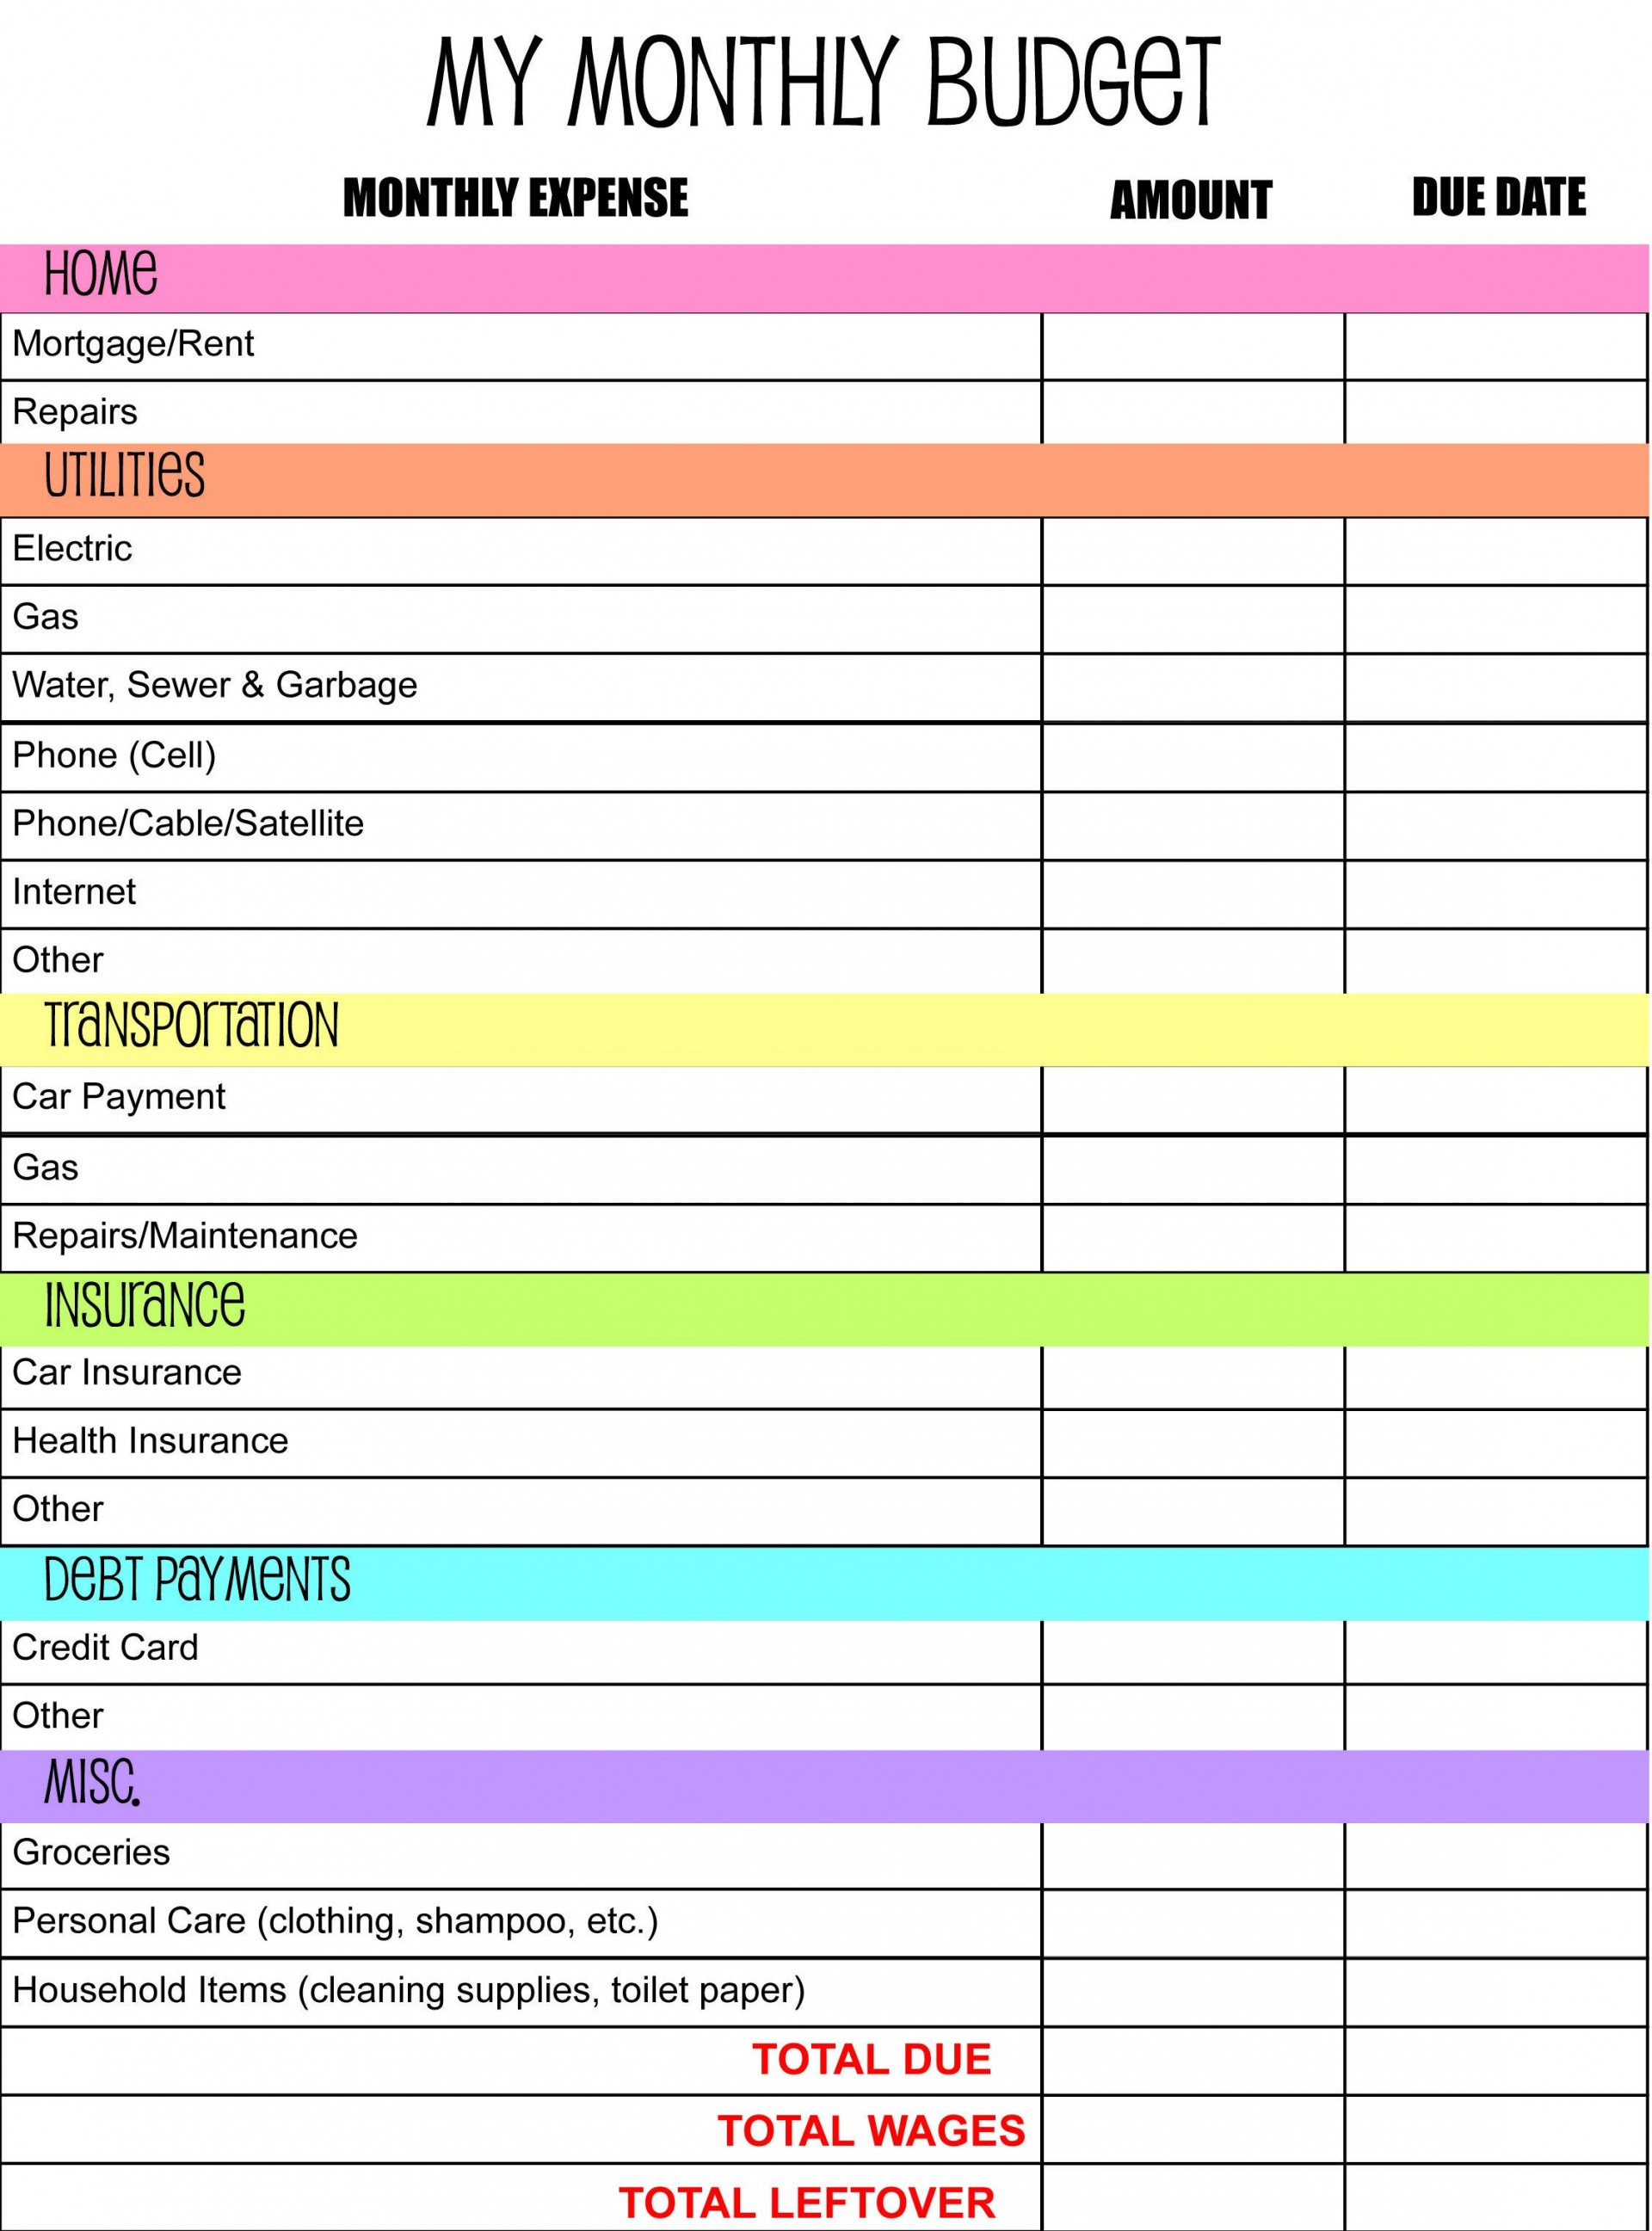 005 Impressive Monthly Budget Spreadsheet Template Free Image  Personal1920